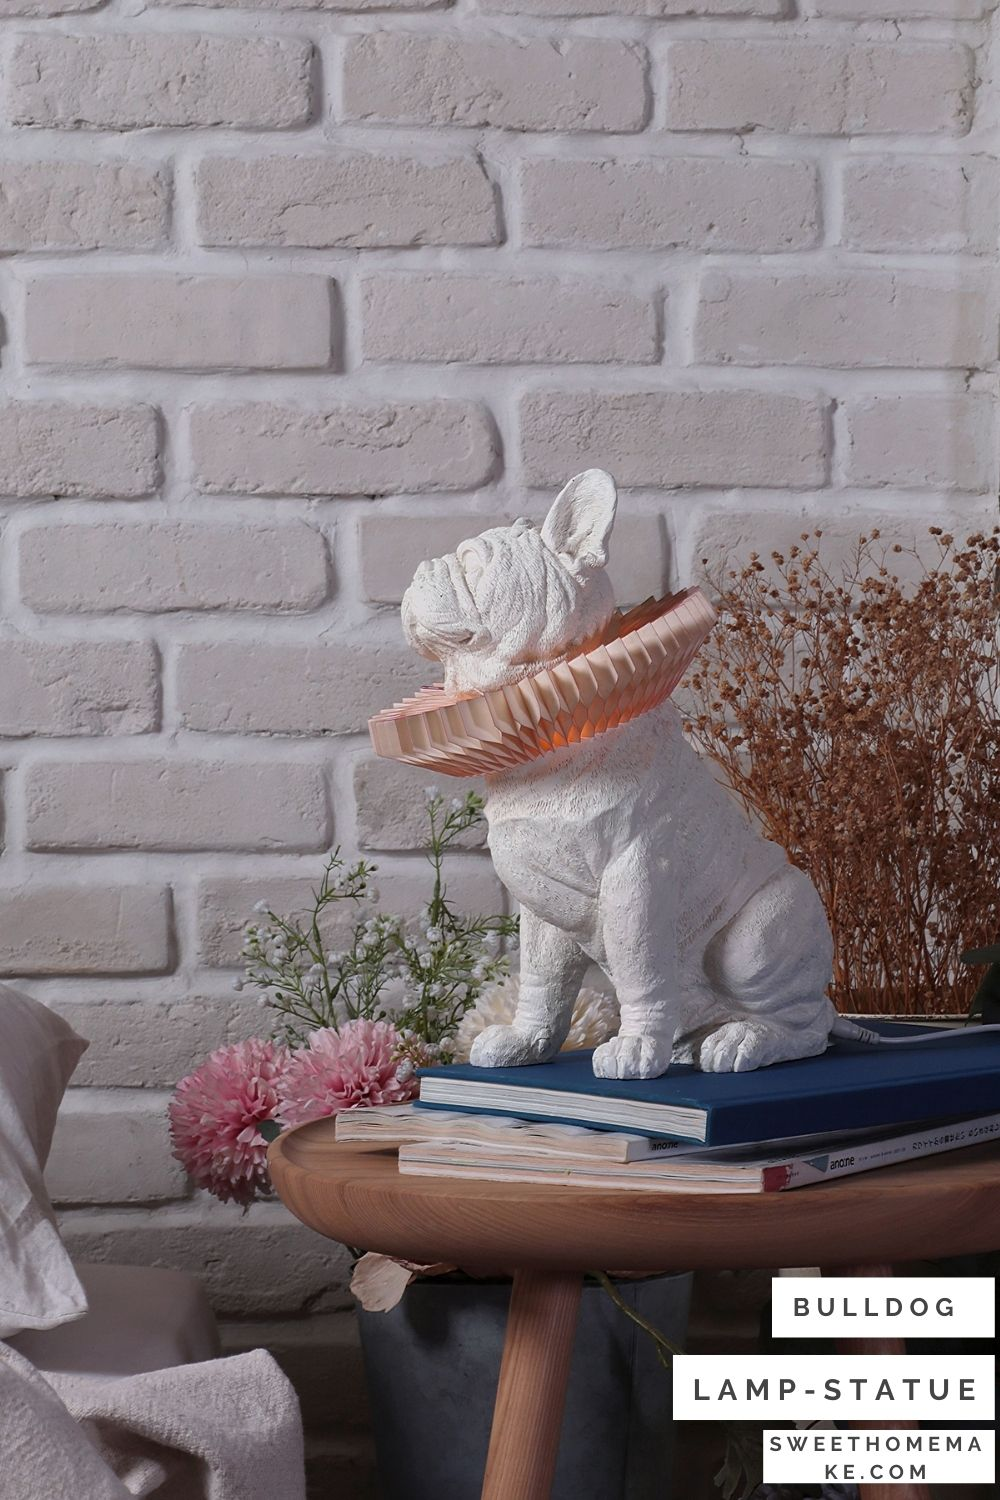 French bulldog table lamp brings nature into your living spaces